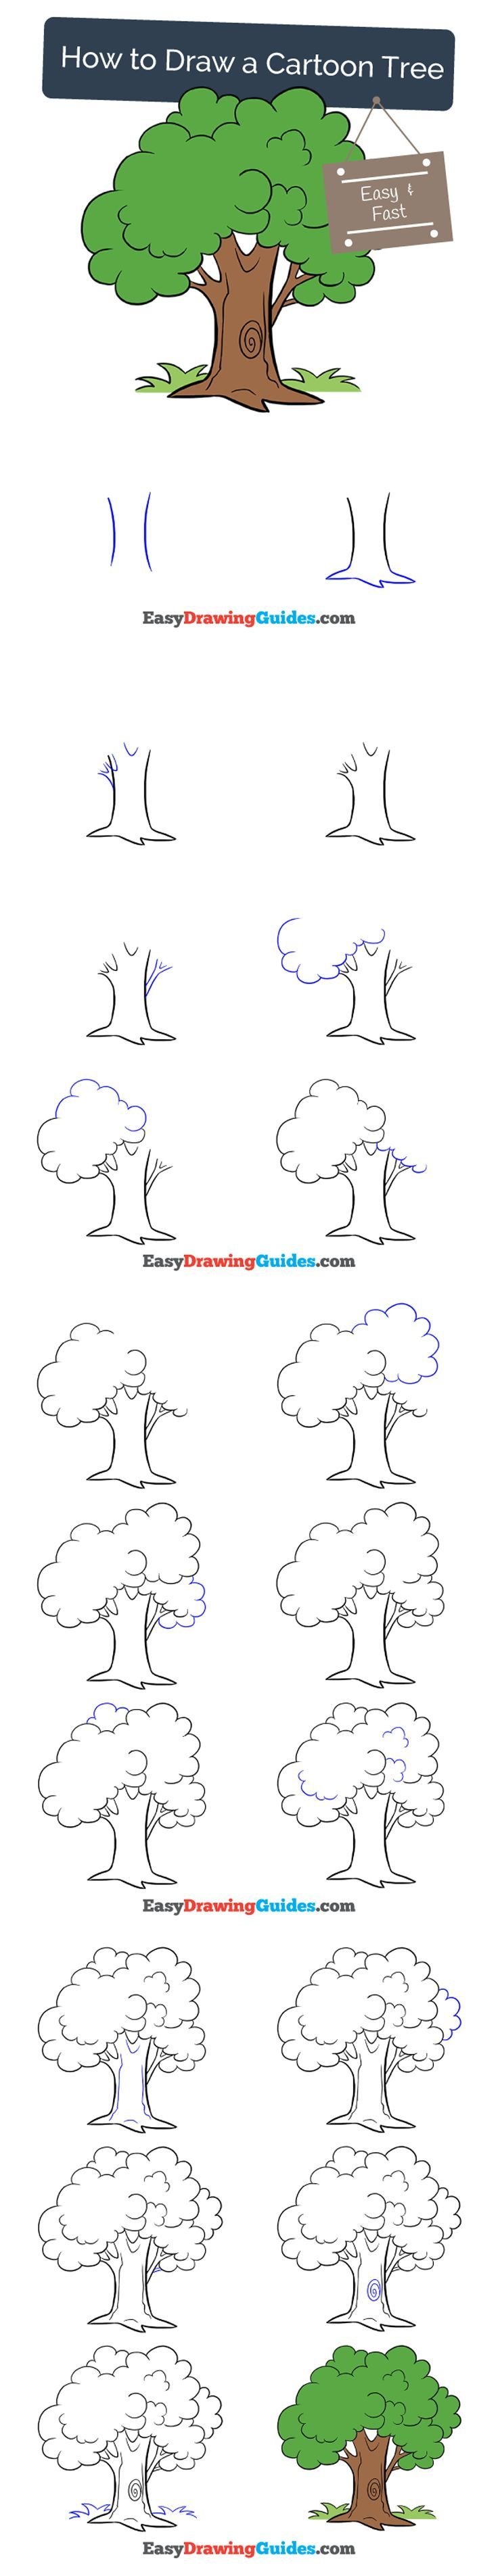 Draw Pattern Learn How To Draw A Cartoon Tree Easy Step By Step Drawing Tutorial For Kids An Codesign Magazine Daily Updated Magazine Celebrating Creative Talent From Around The World See more ideas about tree drawing, tree drawing simple, tree. easy step by step drawing tutorial for